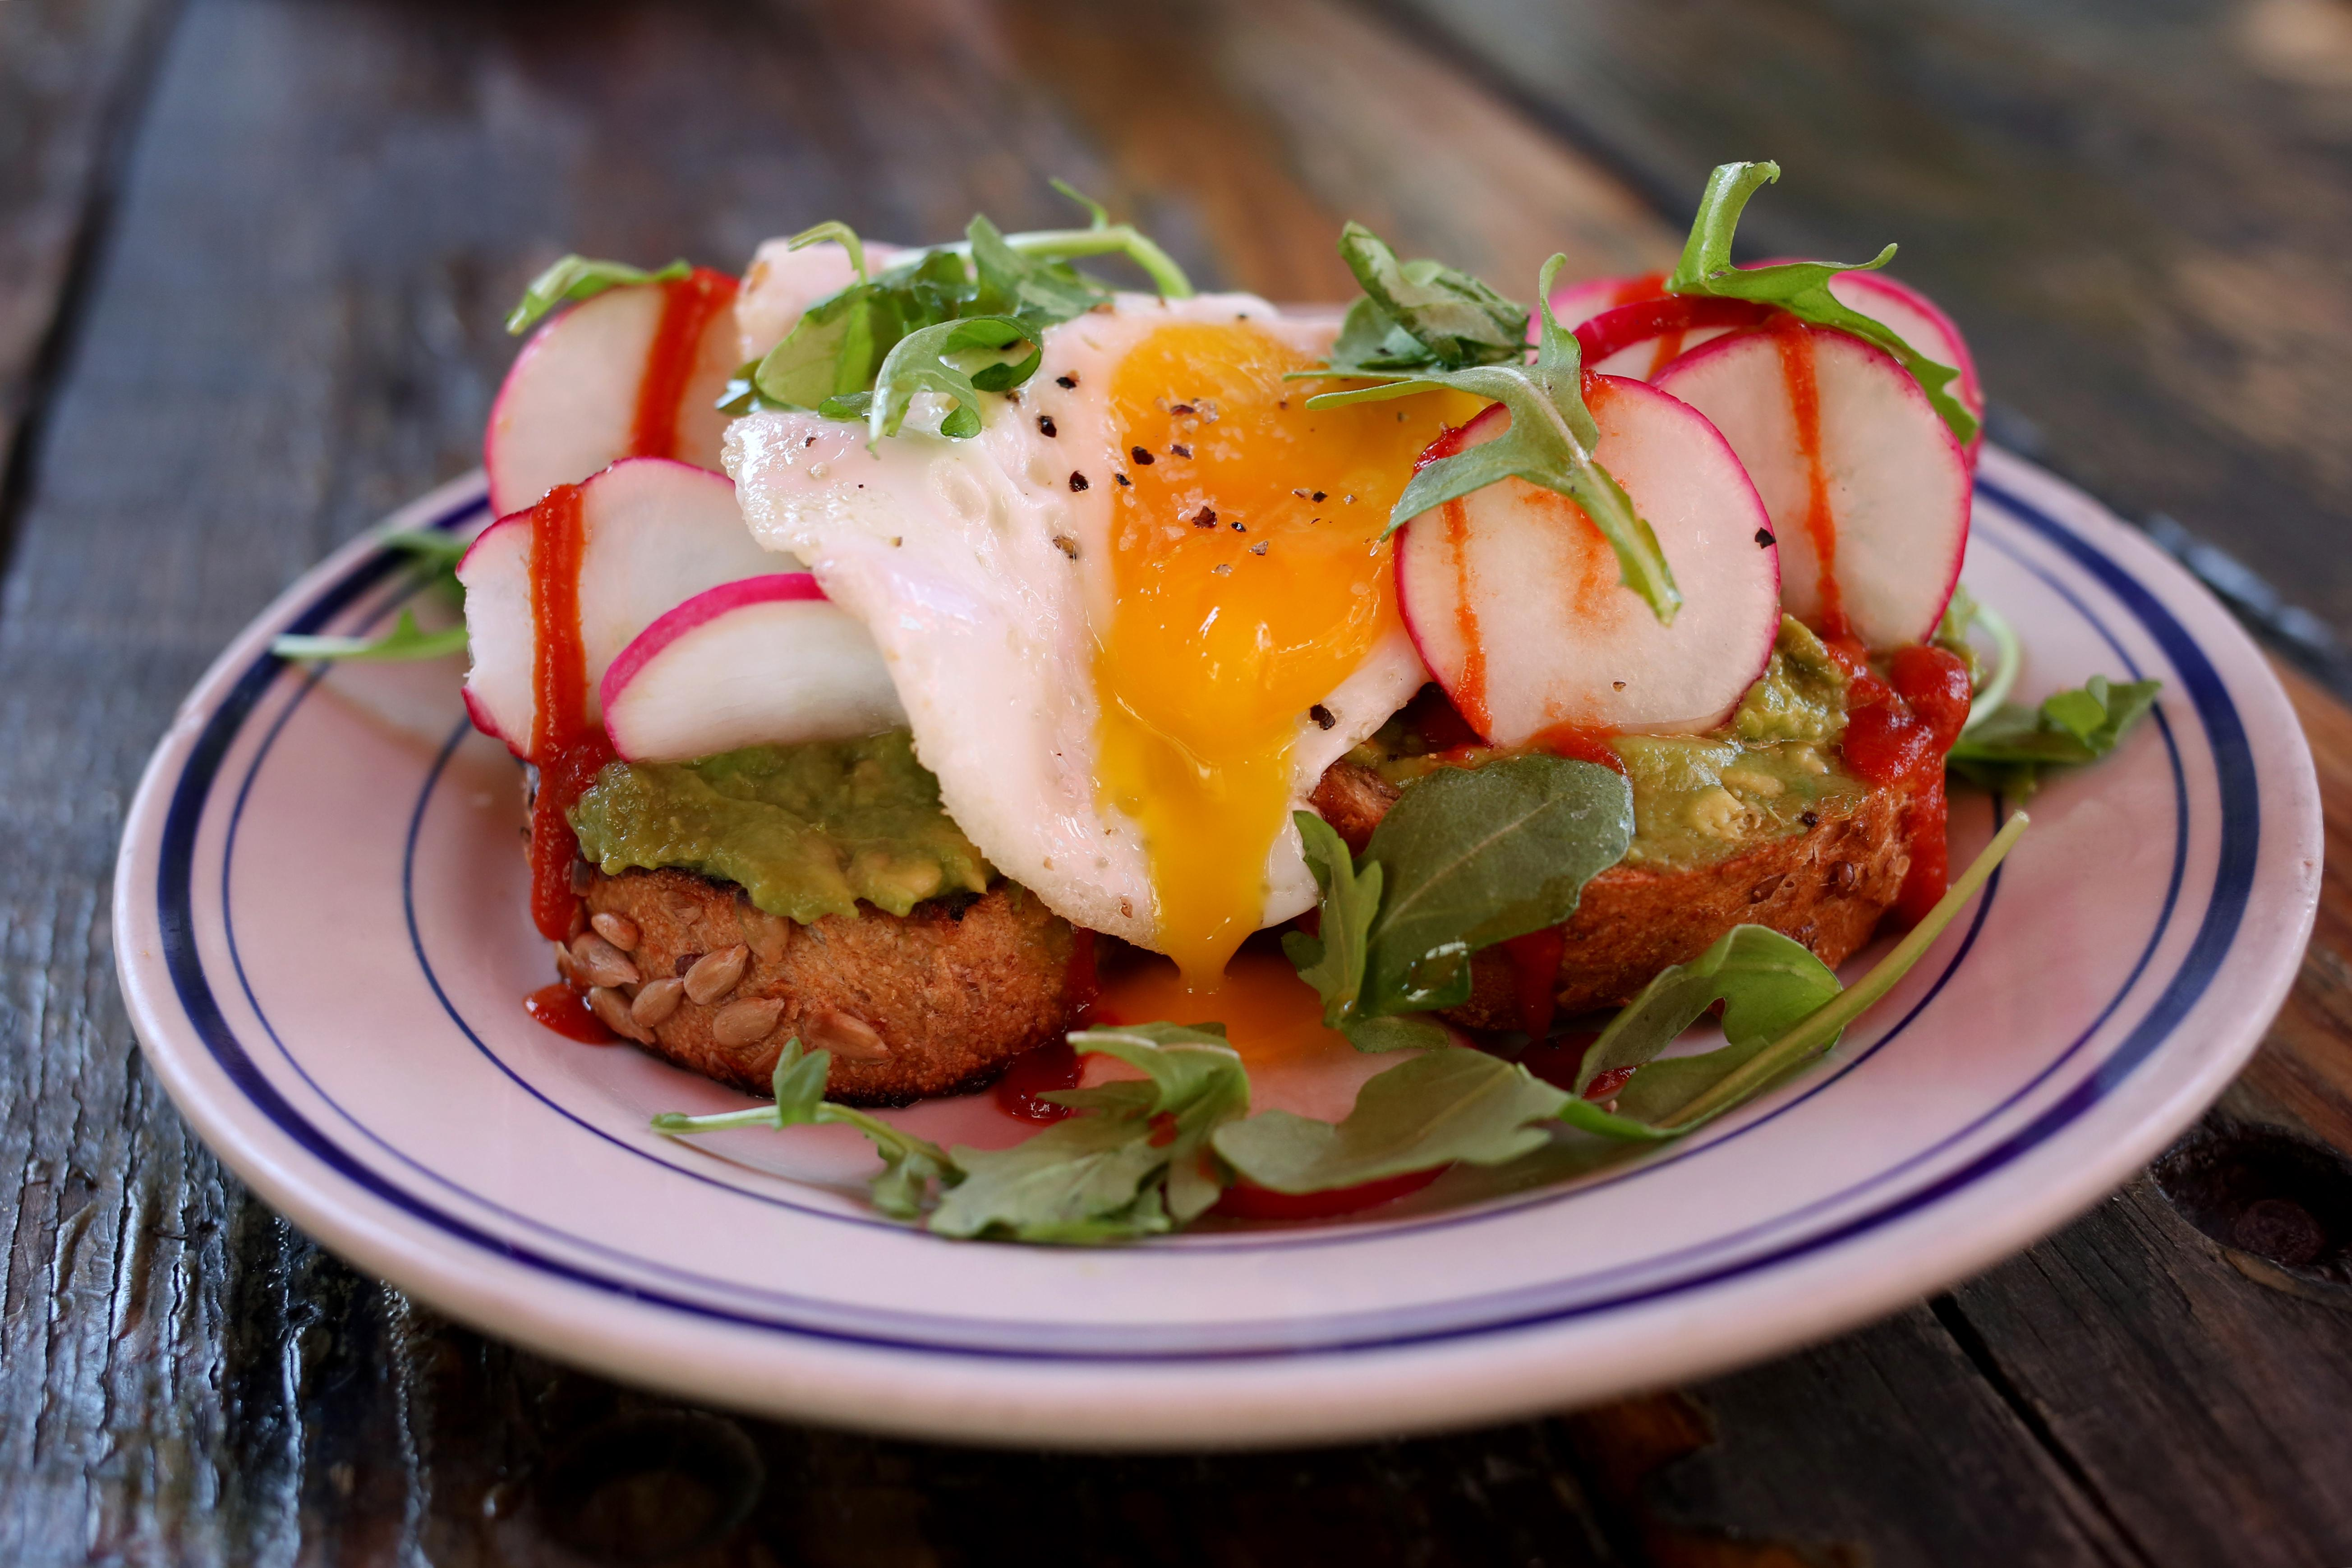 Duke's version of avocado toast comes on multi-grain bread from  Lyon's Bakery, topped with radish, arugula and a runny egg.  The peppery flavors come are nicely complemented by the egg, a common topping in California, and there's plenty of avocado in every bite. (Amanda Andrade-Rhoades/DC Refined)